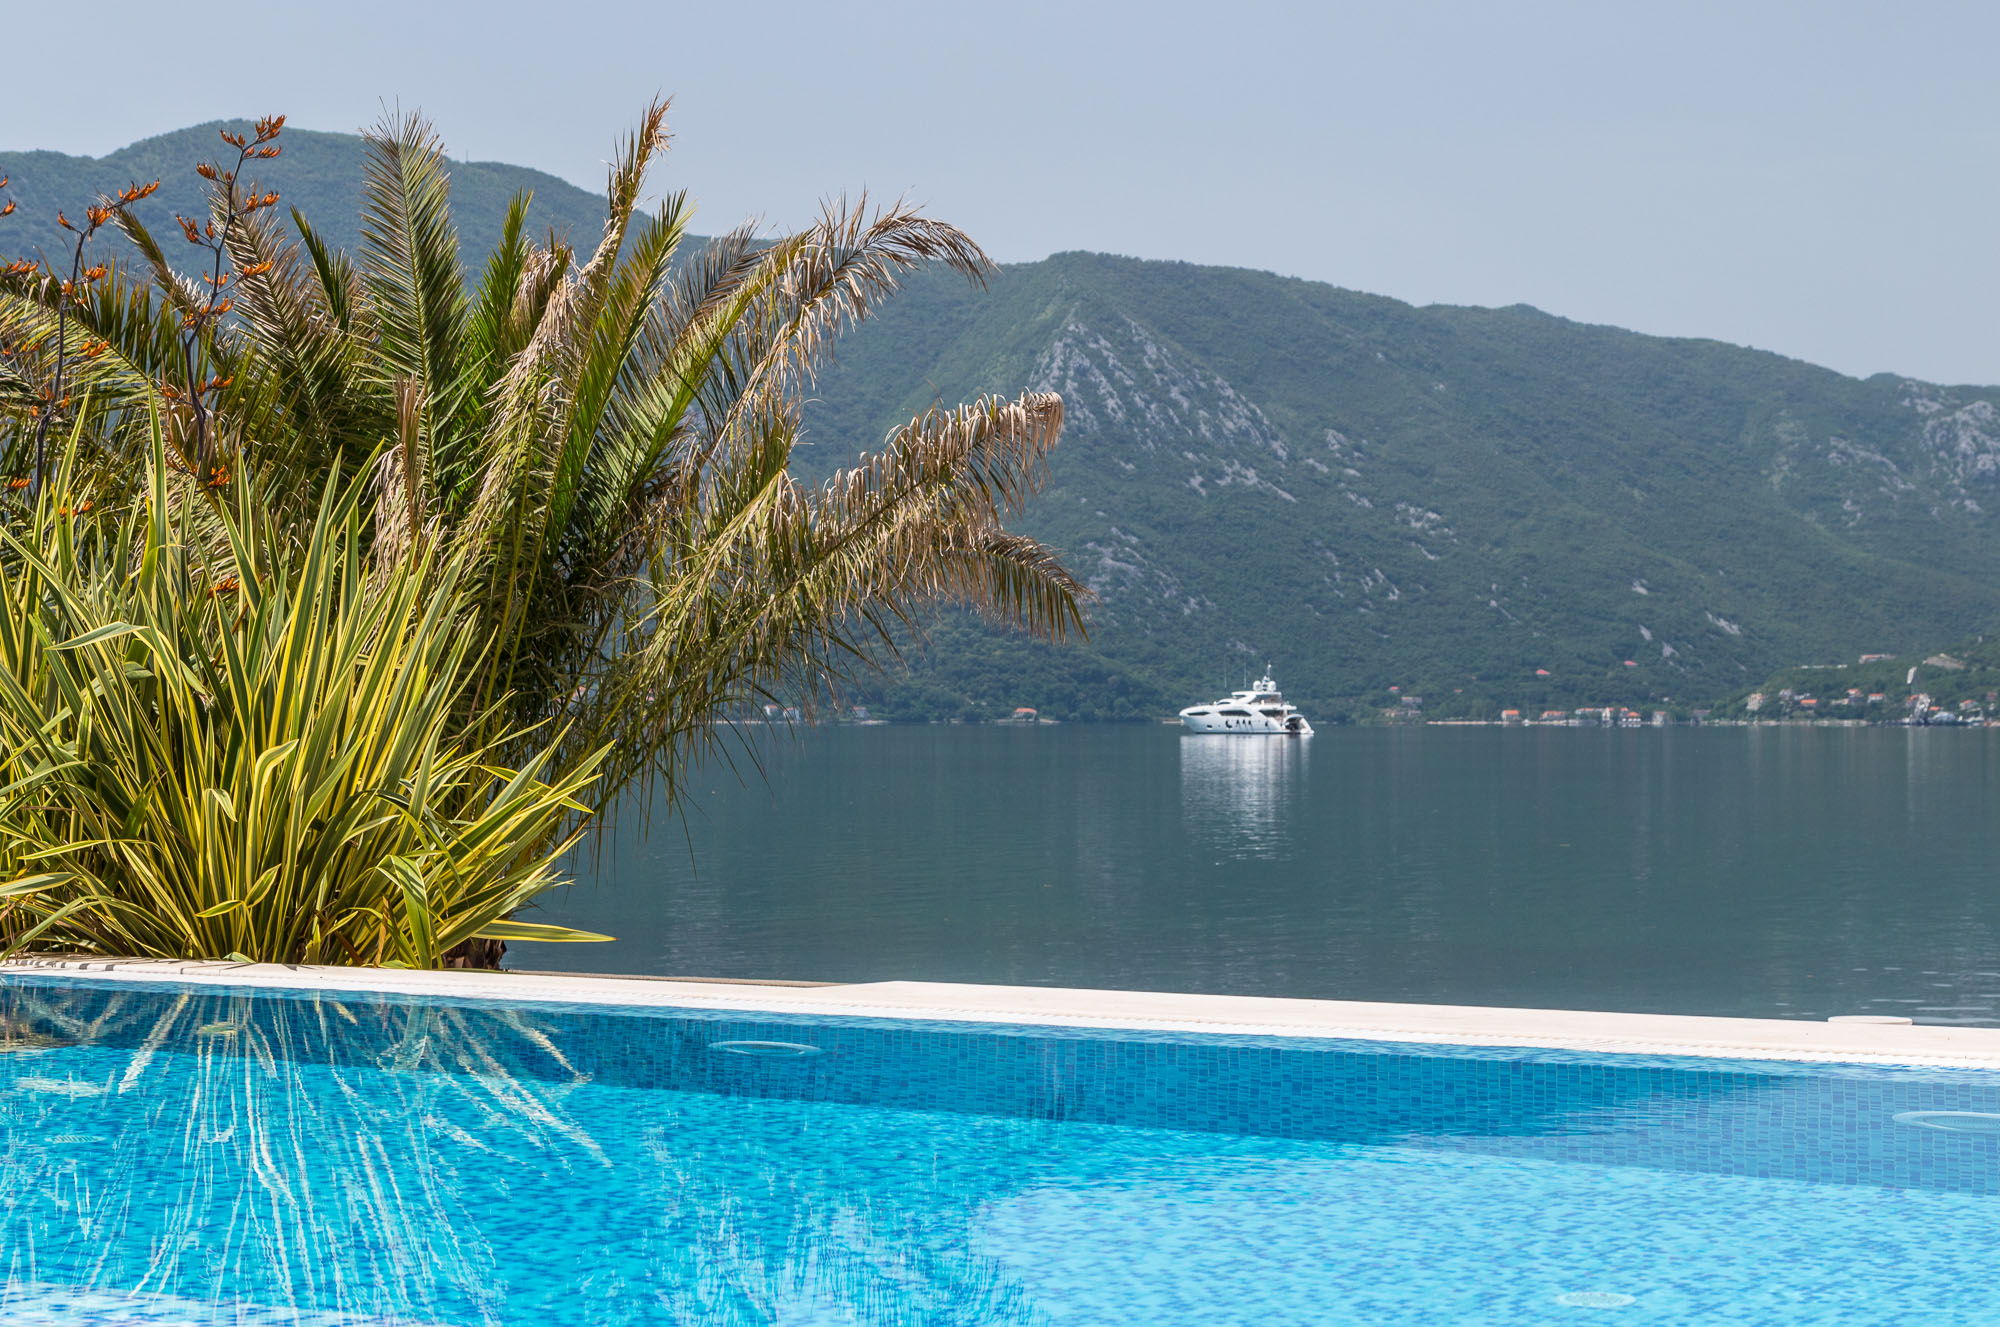 waterfront-villa-with-covered-terrace-risan-Bay-Of-Kotor-Montenegro-pool.jpg